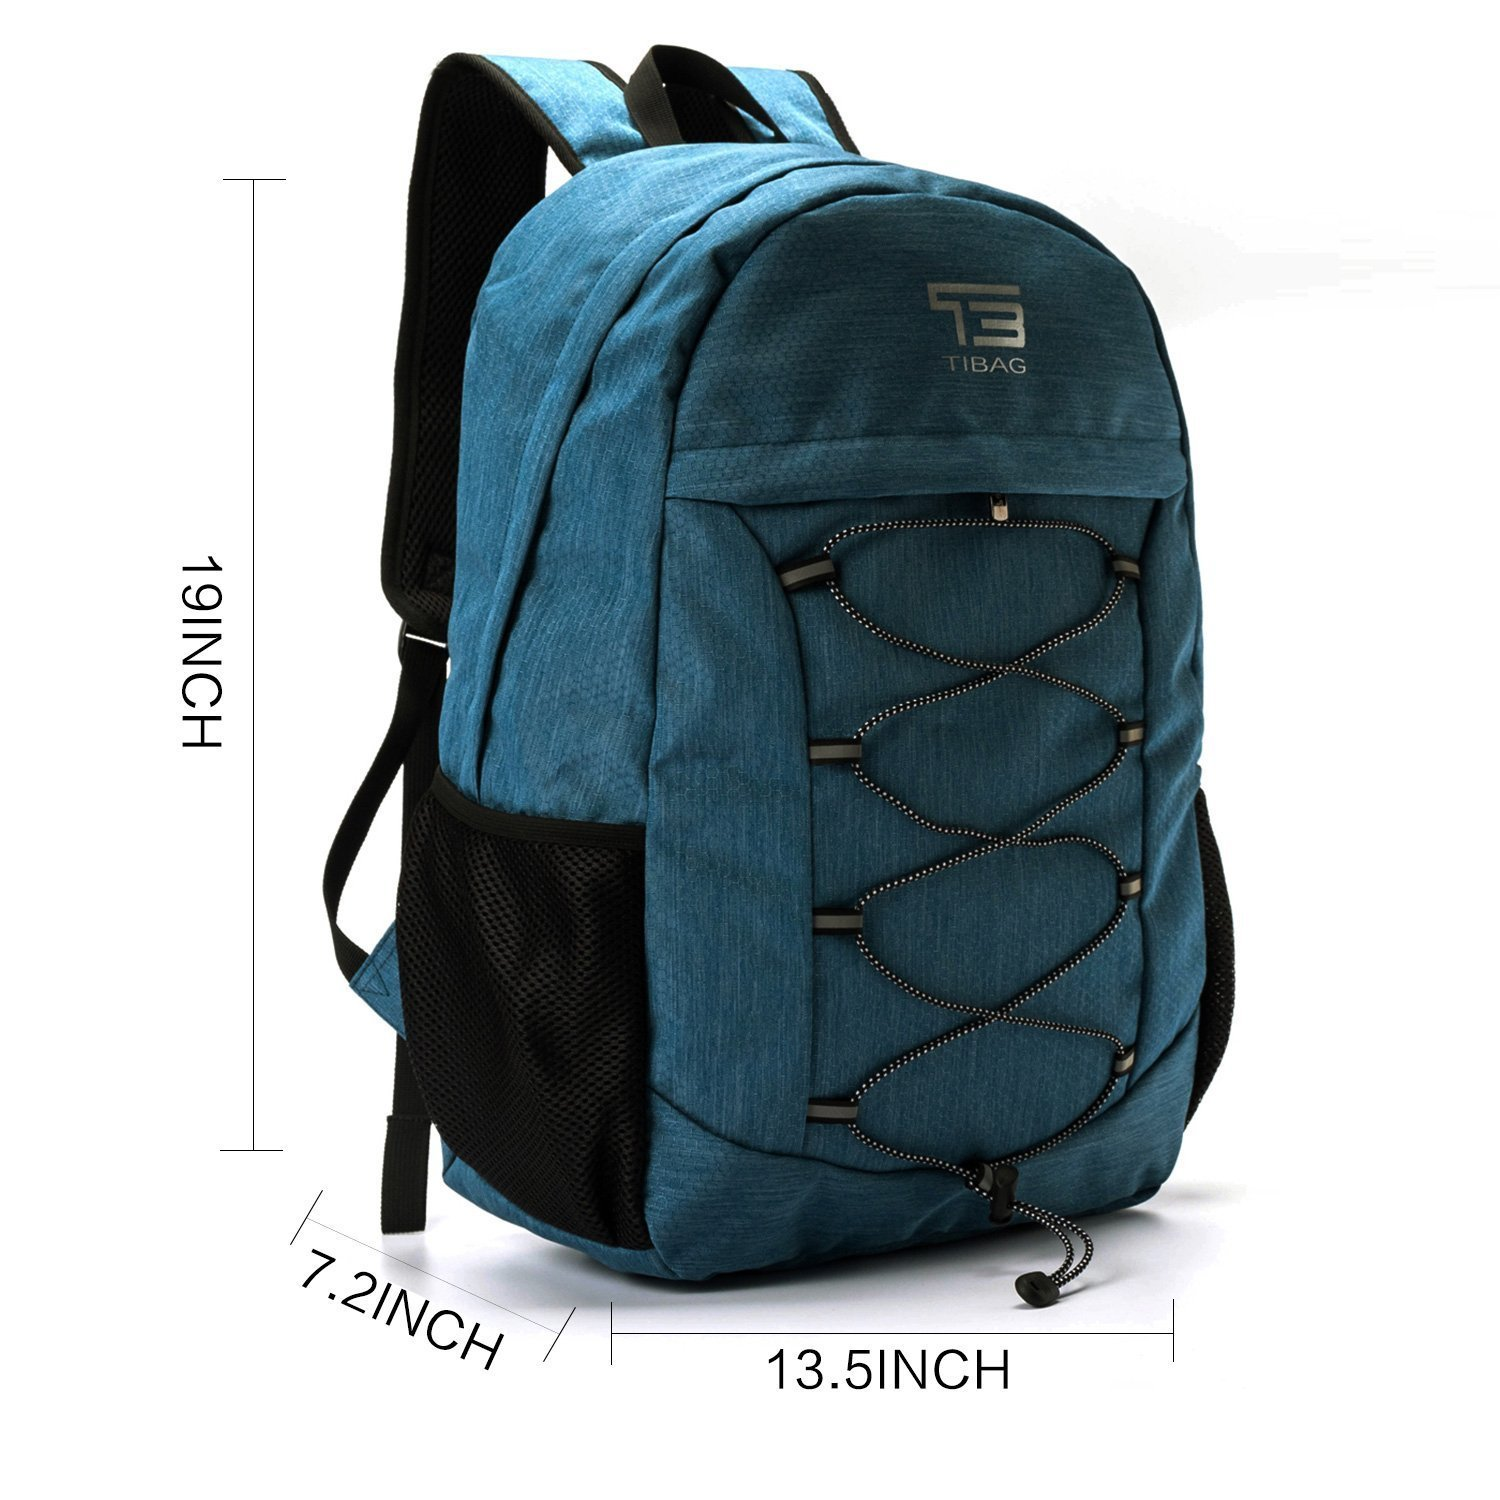 e45fa1b7434d ZZW Packable Foldable Waterproof Sports Backpack, Multi-functional ...